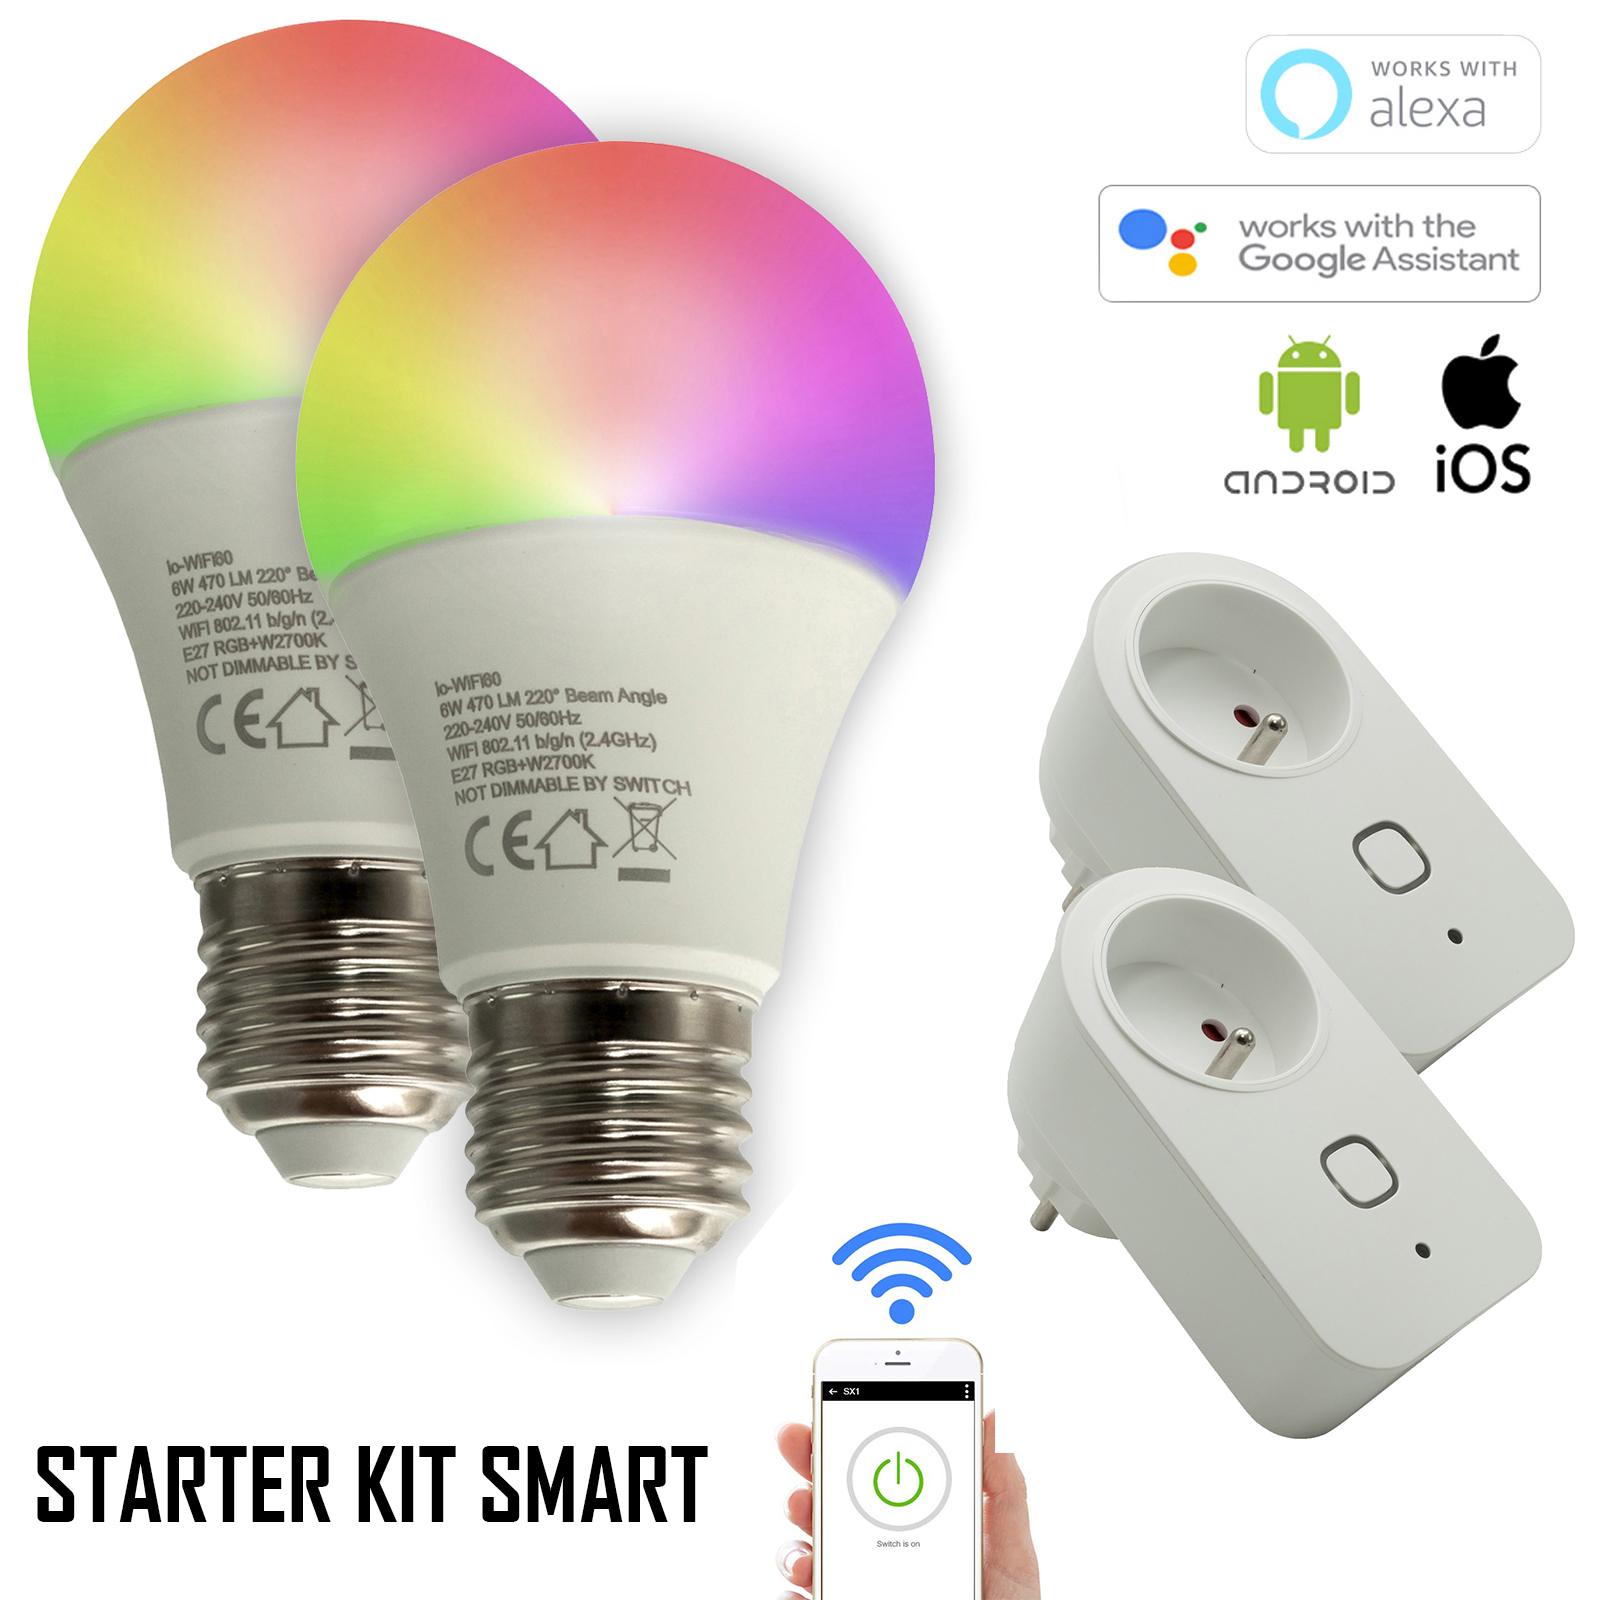 SMART WiFi STARTER KIT with 2 LED lamps E27 RGBW 2700K 12W colour therapy + 2 mains sockets smart NO HUB Amazon Alexa Googole Home IFTTT app for smartphone Android iOS